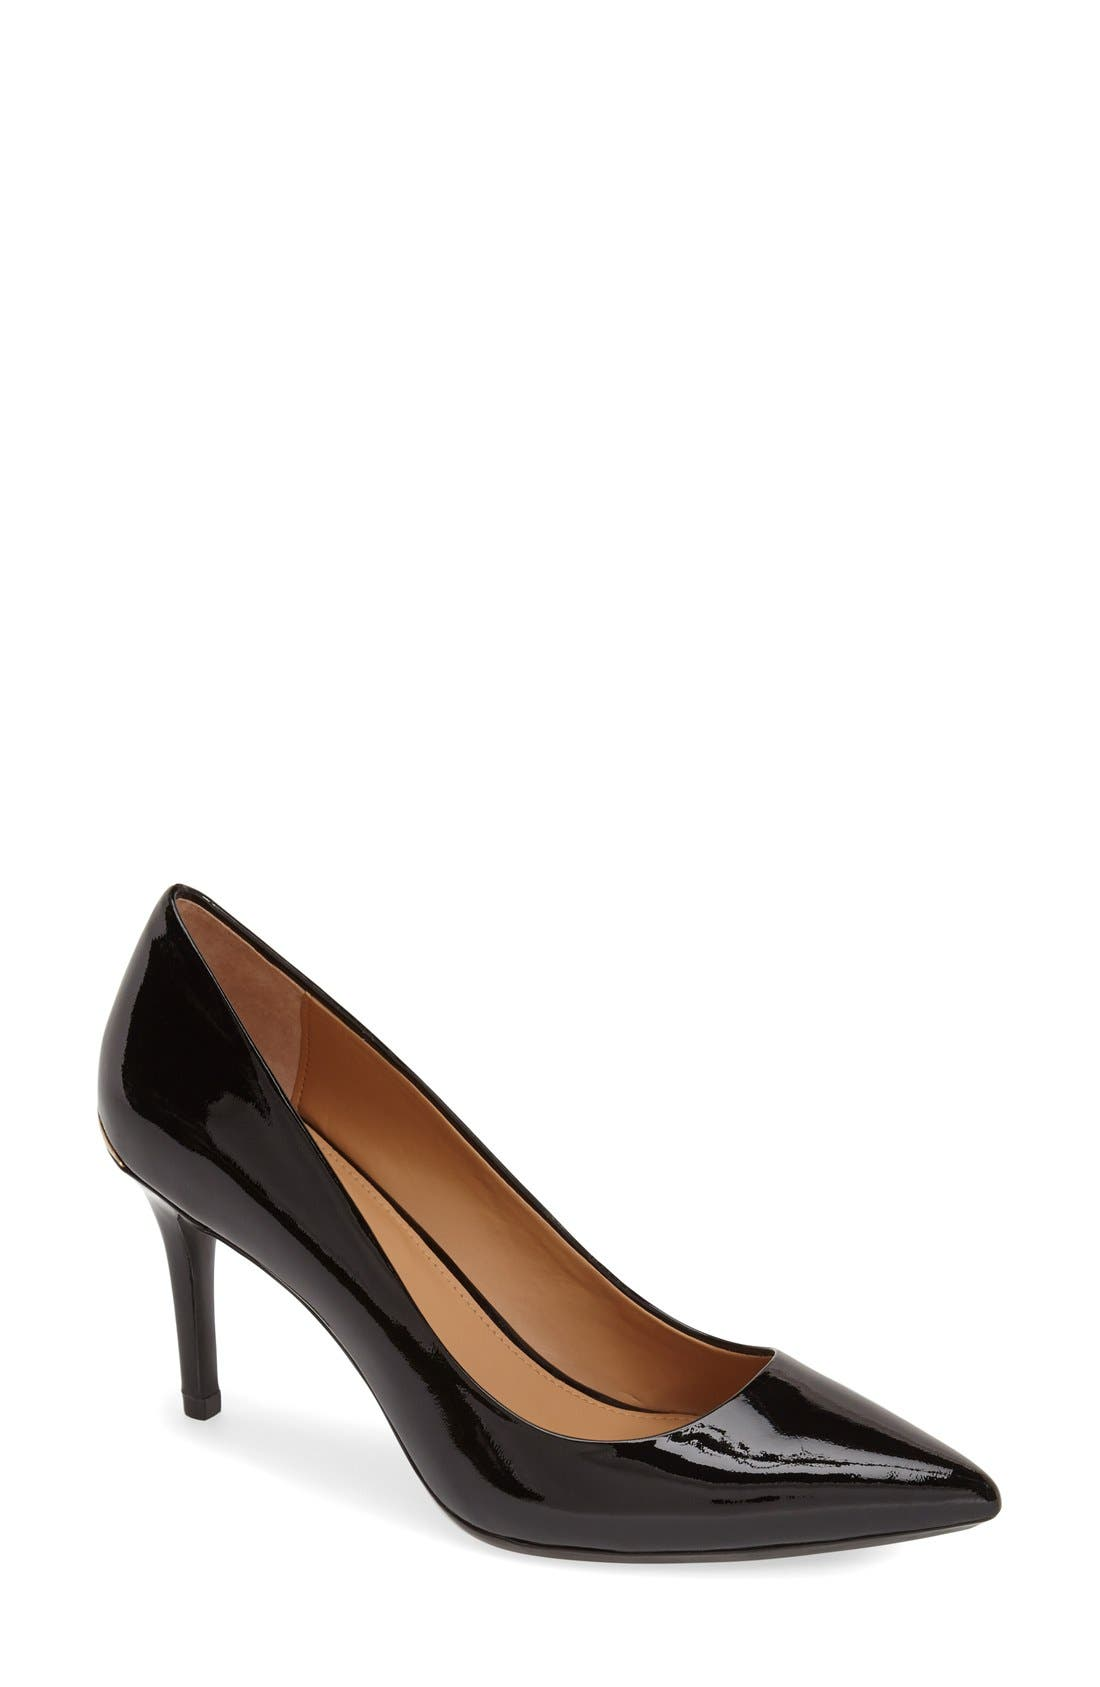 'Gayle' Pointy Toe Pump,                         Main,                         color, BLACK PATENT